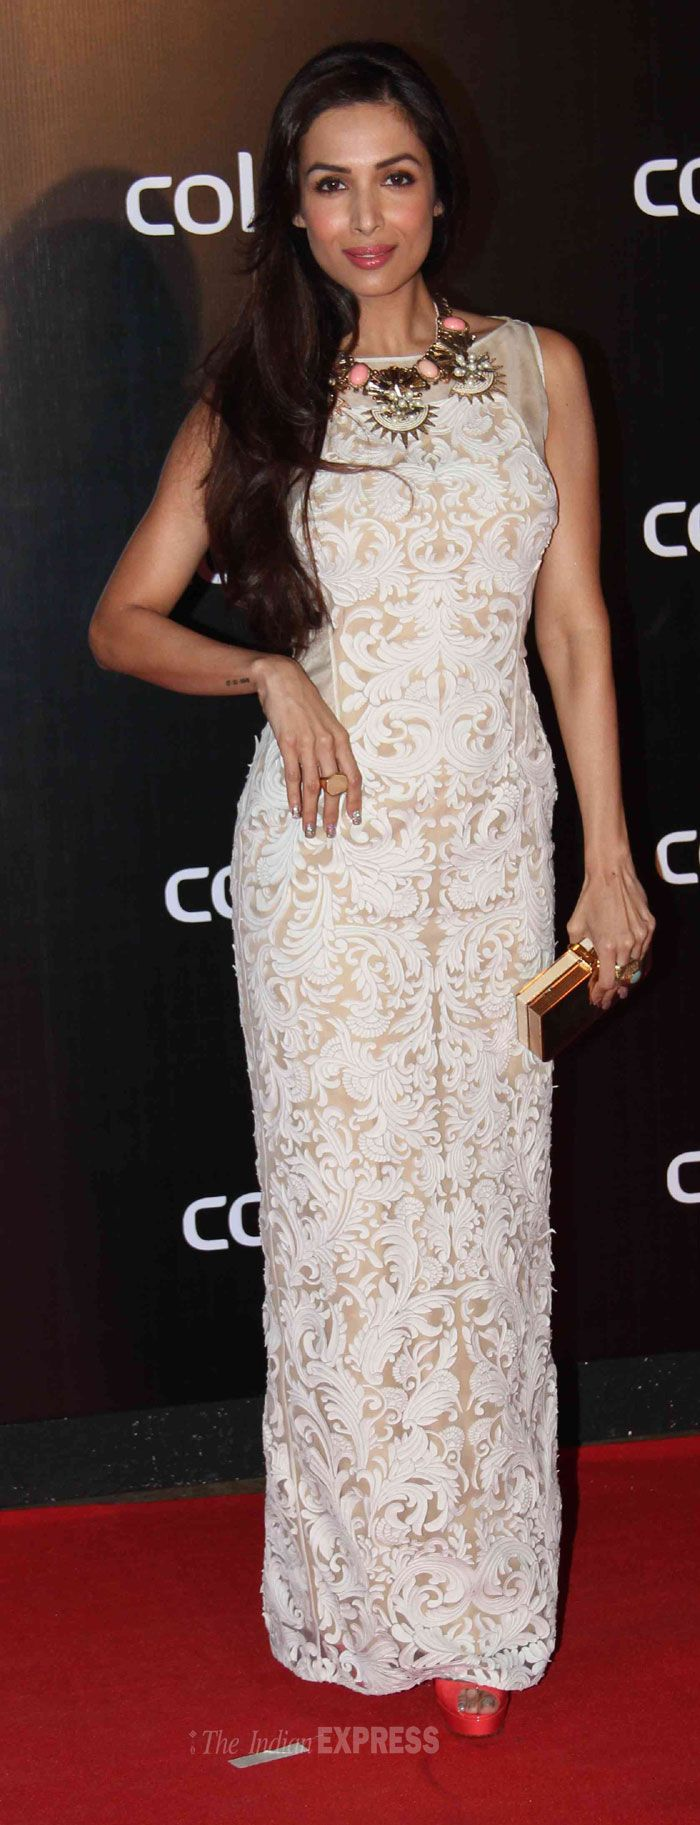 Malaika Arora Khan attended the party wearing a white Pankaj and Nidhi applique gown on the red carpet Colors International Advertising Associations (IAA) Awards. #Style #Bollywood #Fashion #Beauty